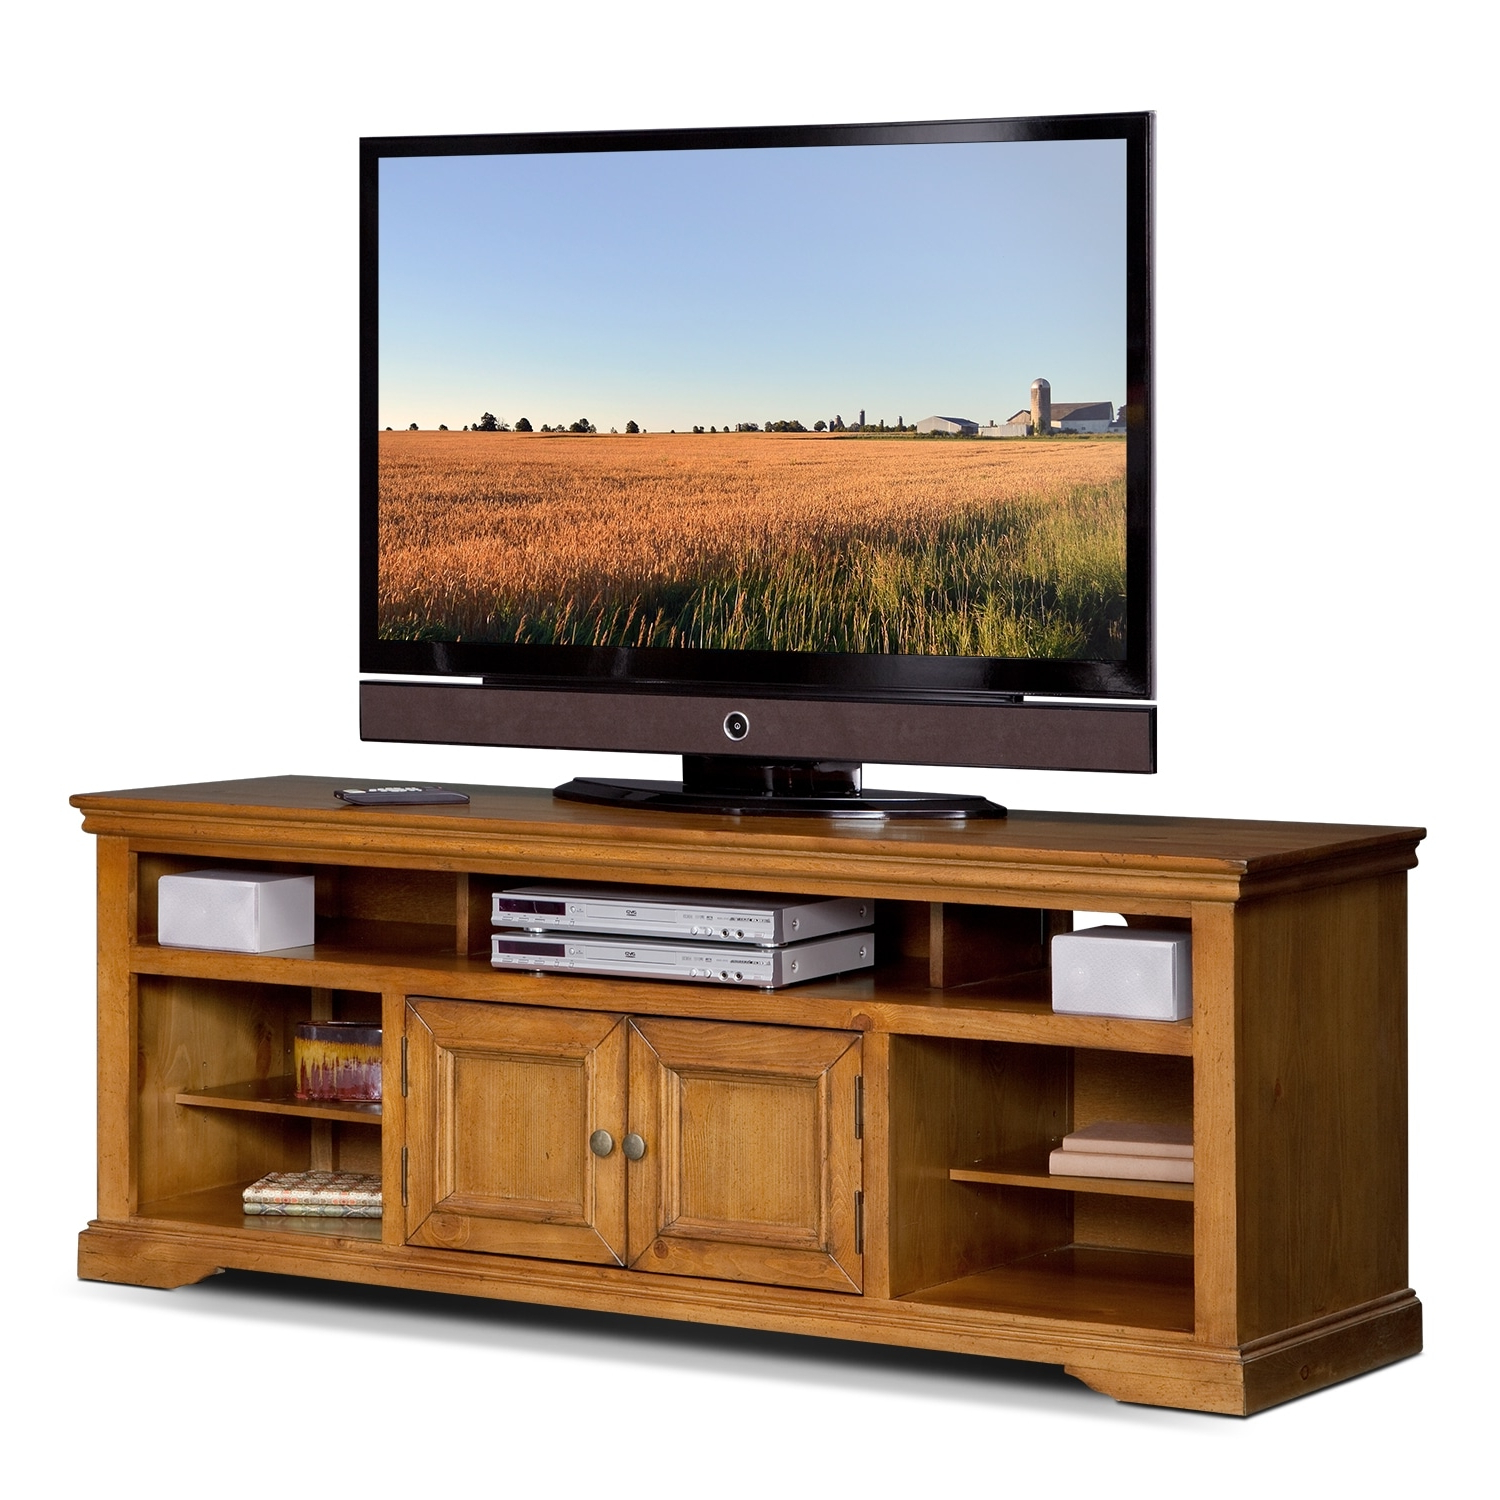 Value City Furniture And Mattresses With Pine Wood Tv Stands (View 5 of 20)